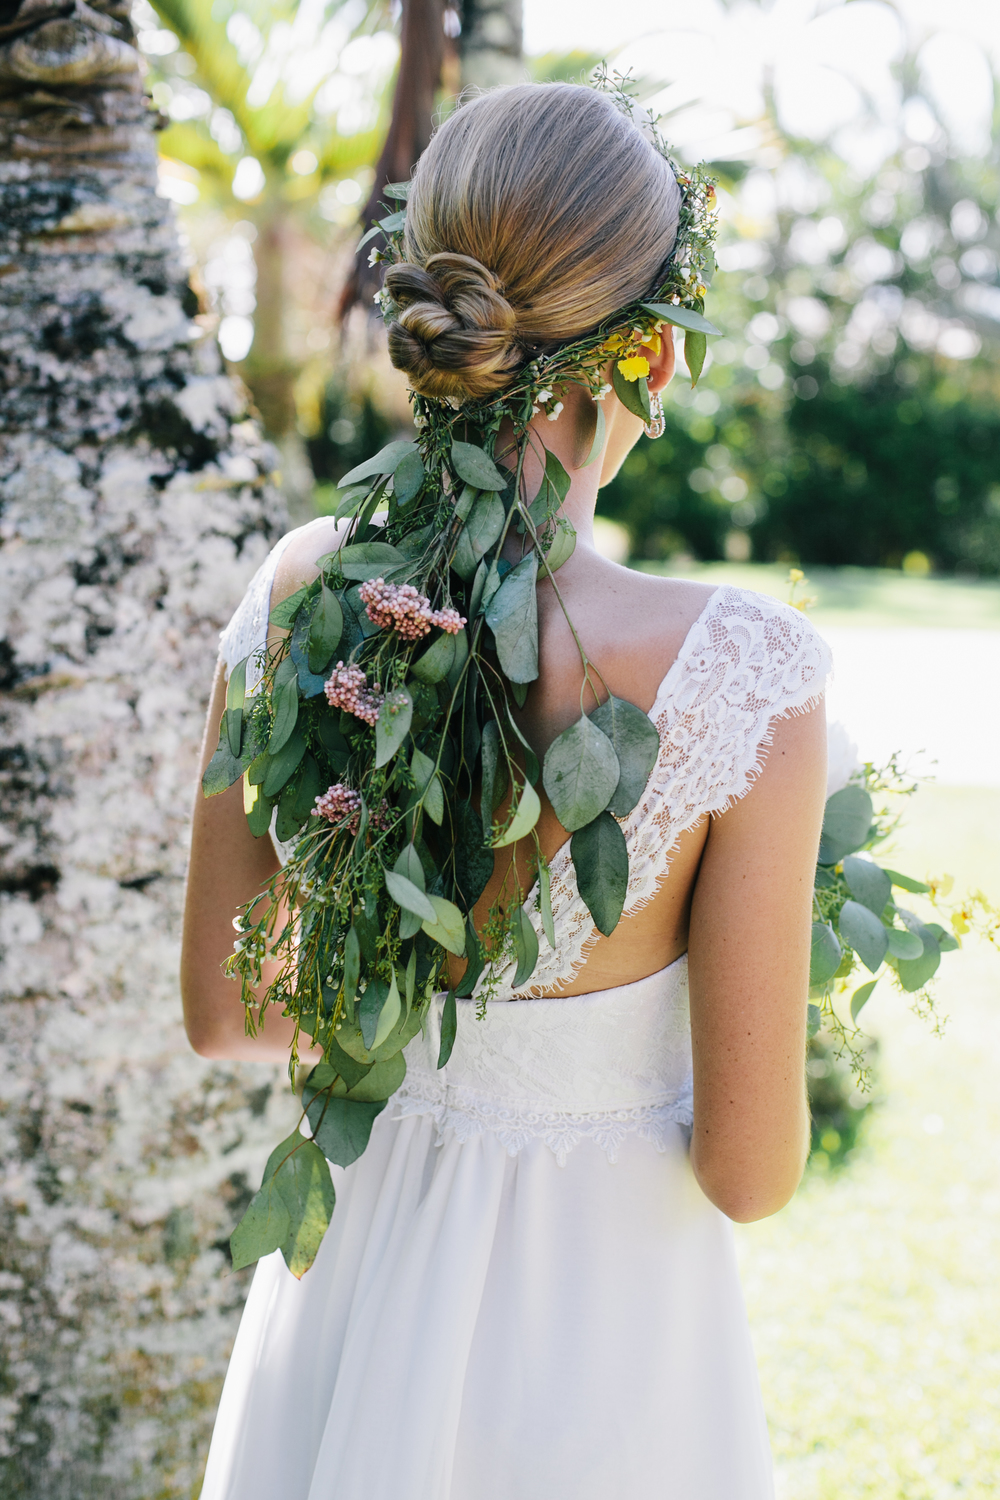 boho flower veil by Passion Roots / Meghan Nicole Photography